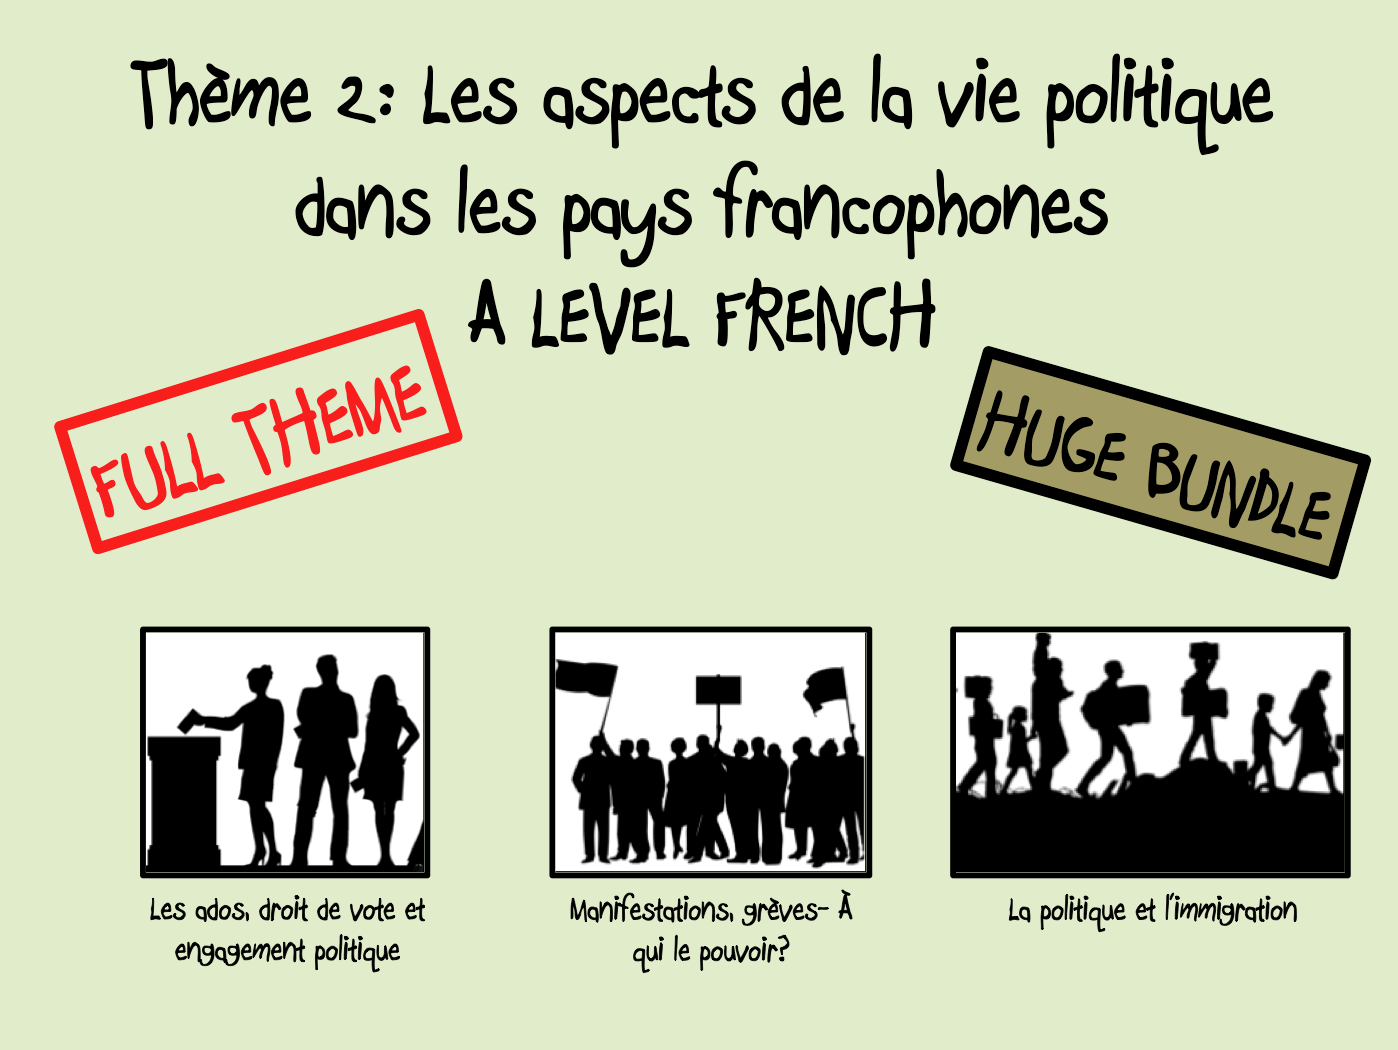 Les aspects de la vie politique- FULL THEME- A LEVEL FRENCH